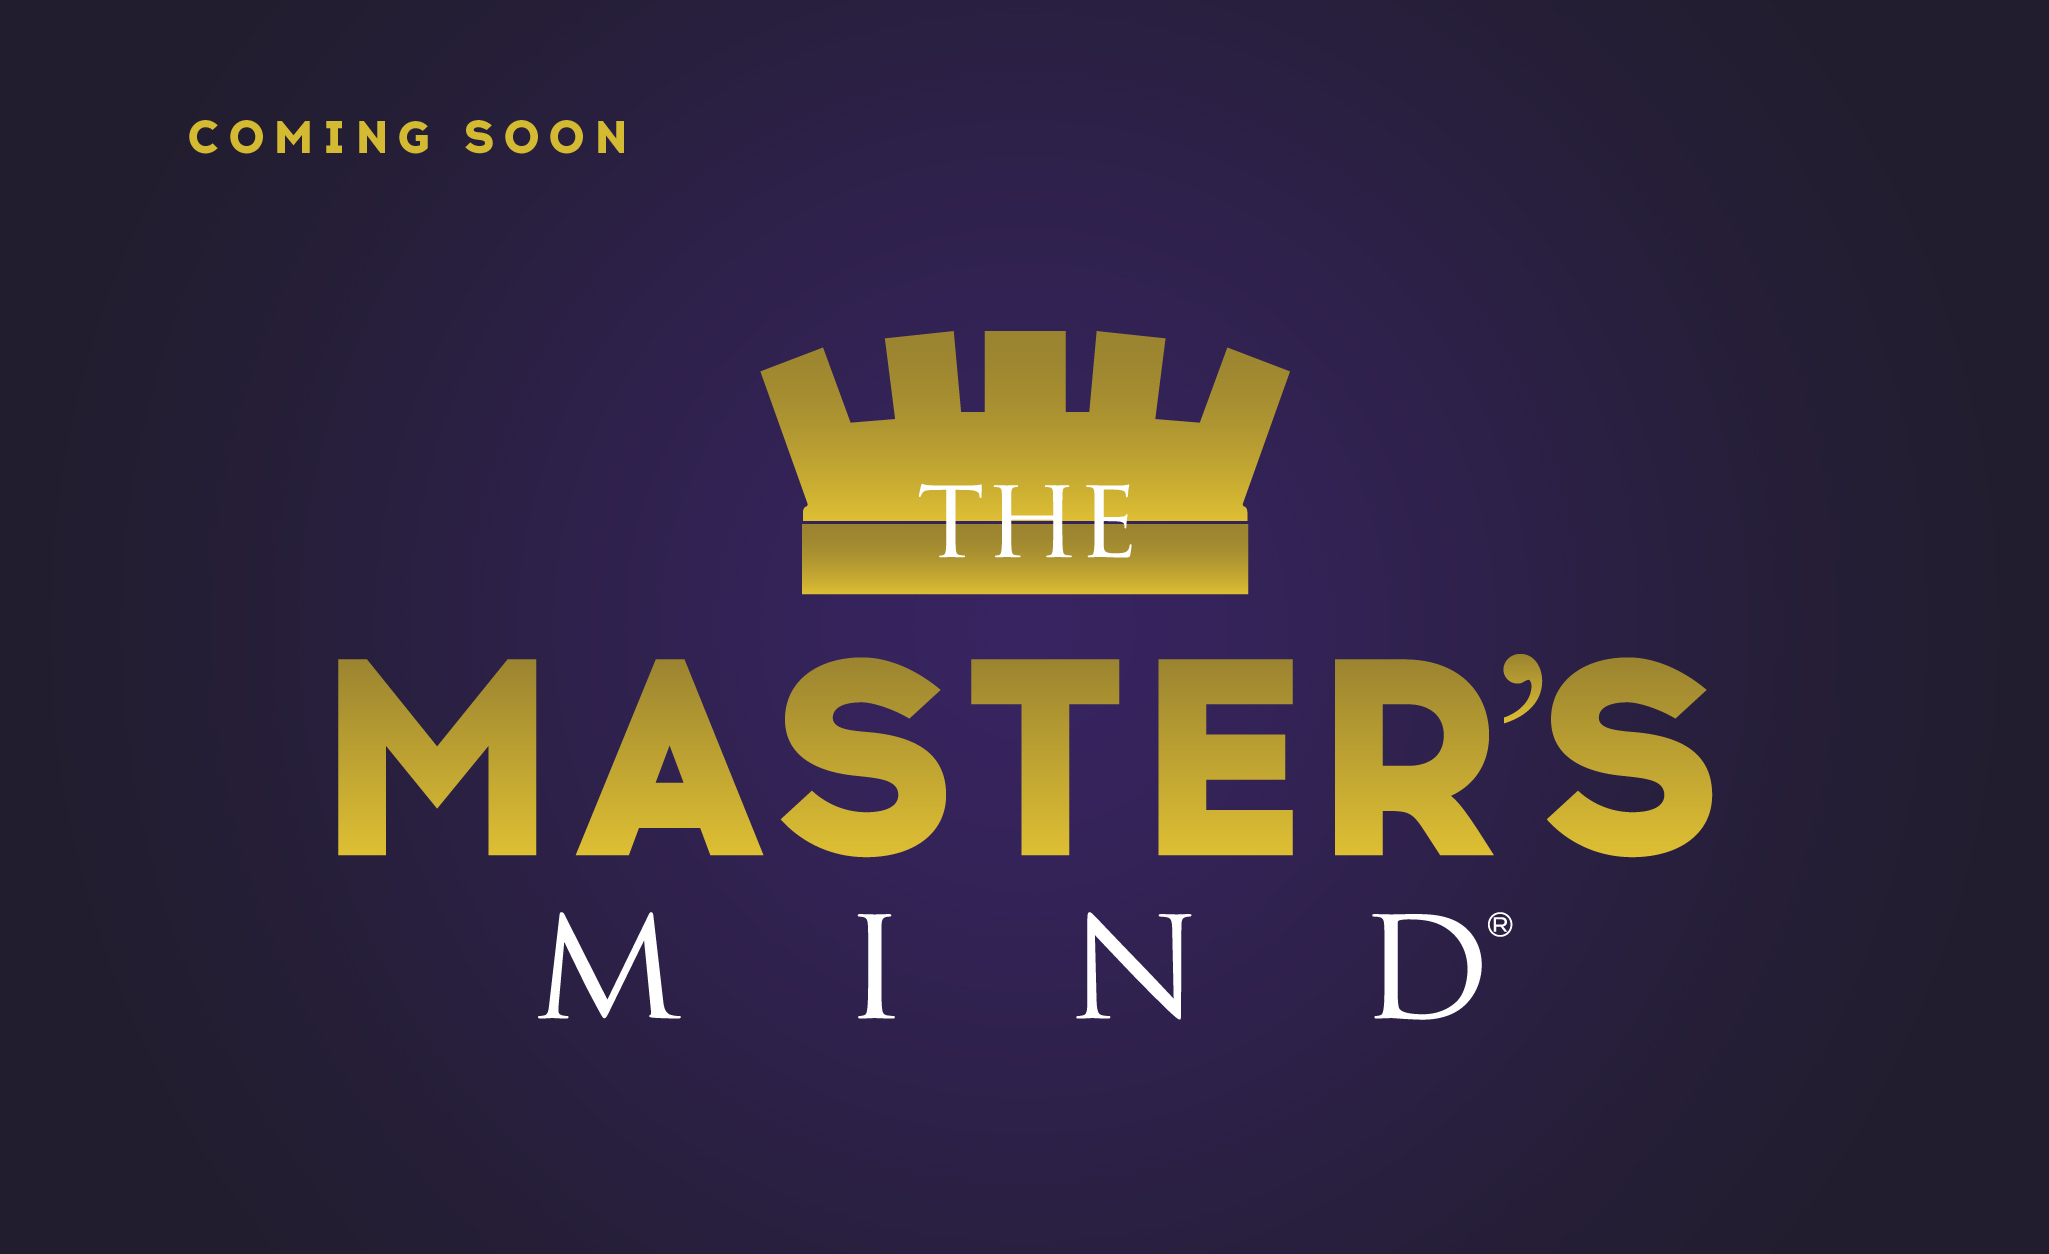 The Master's Mind